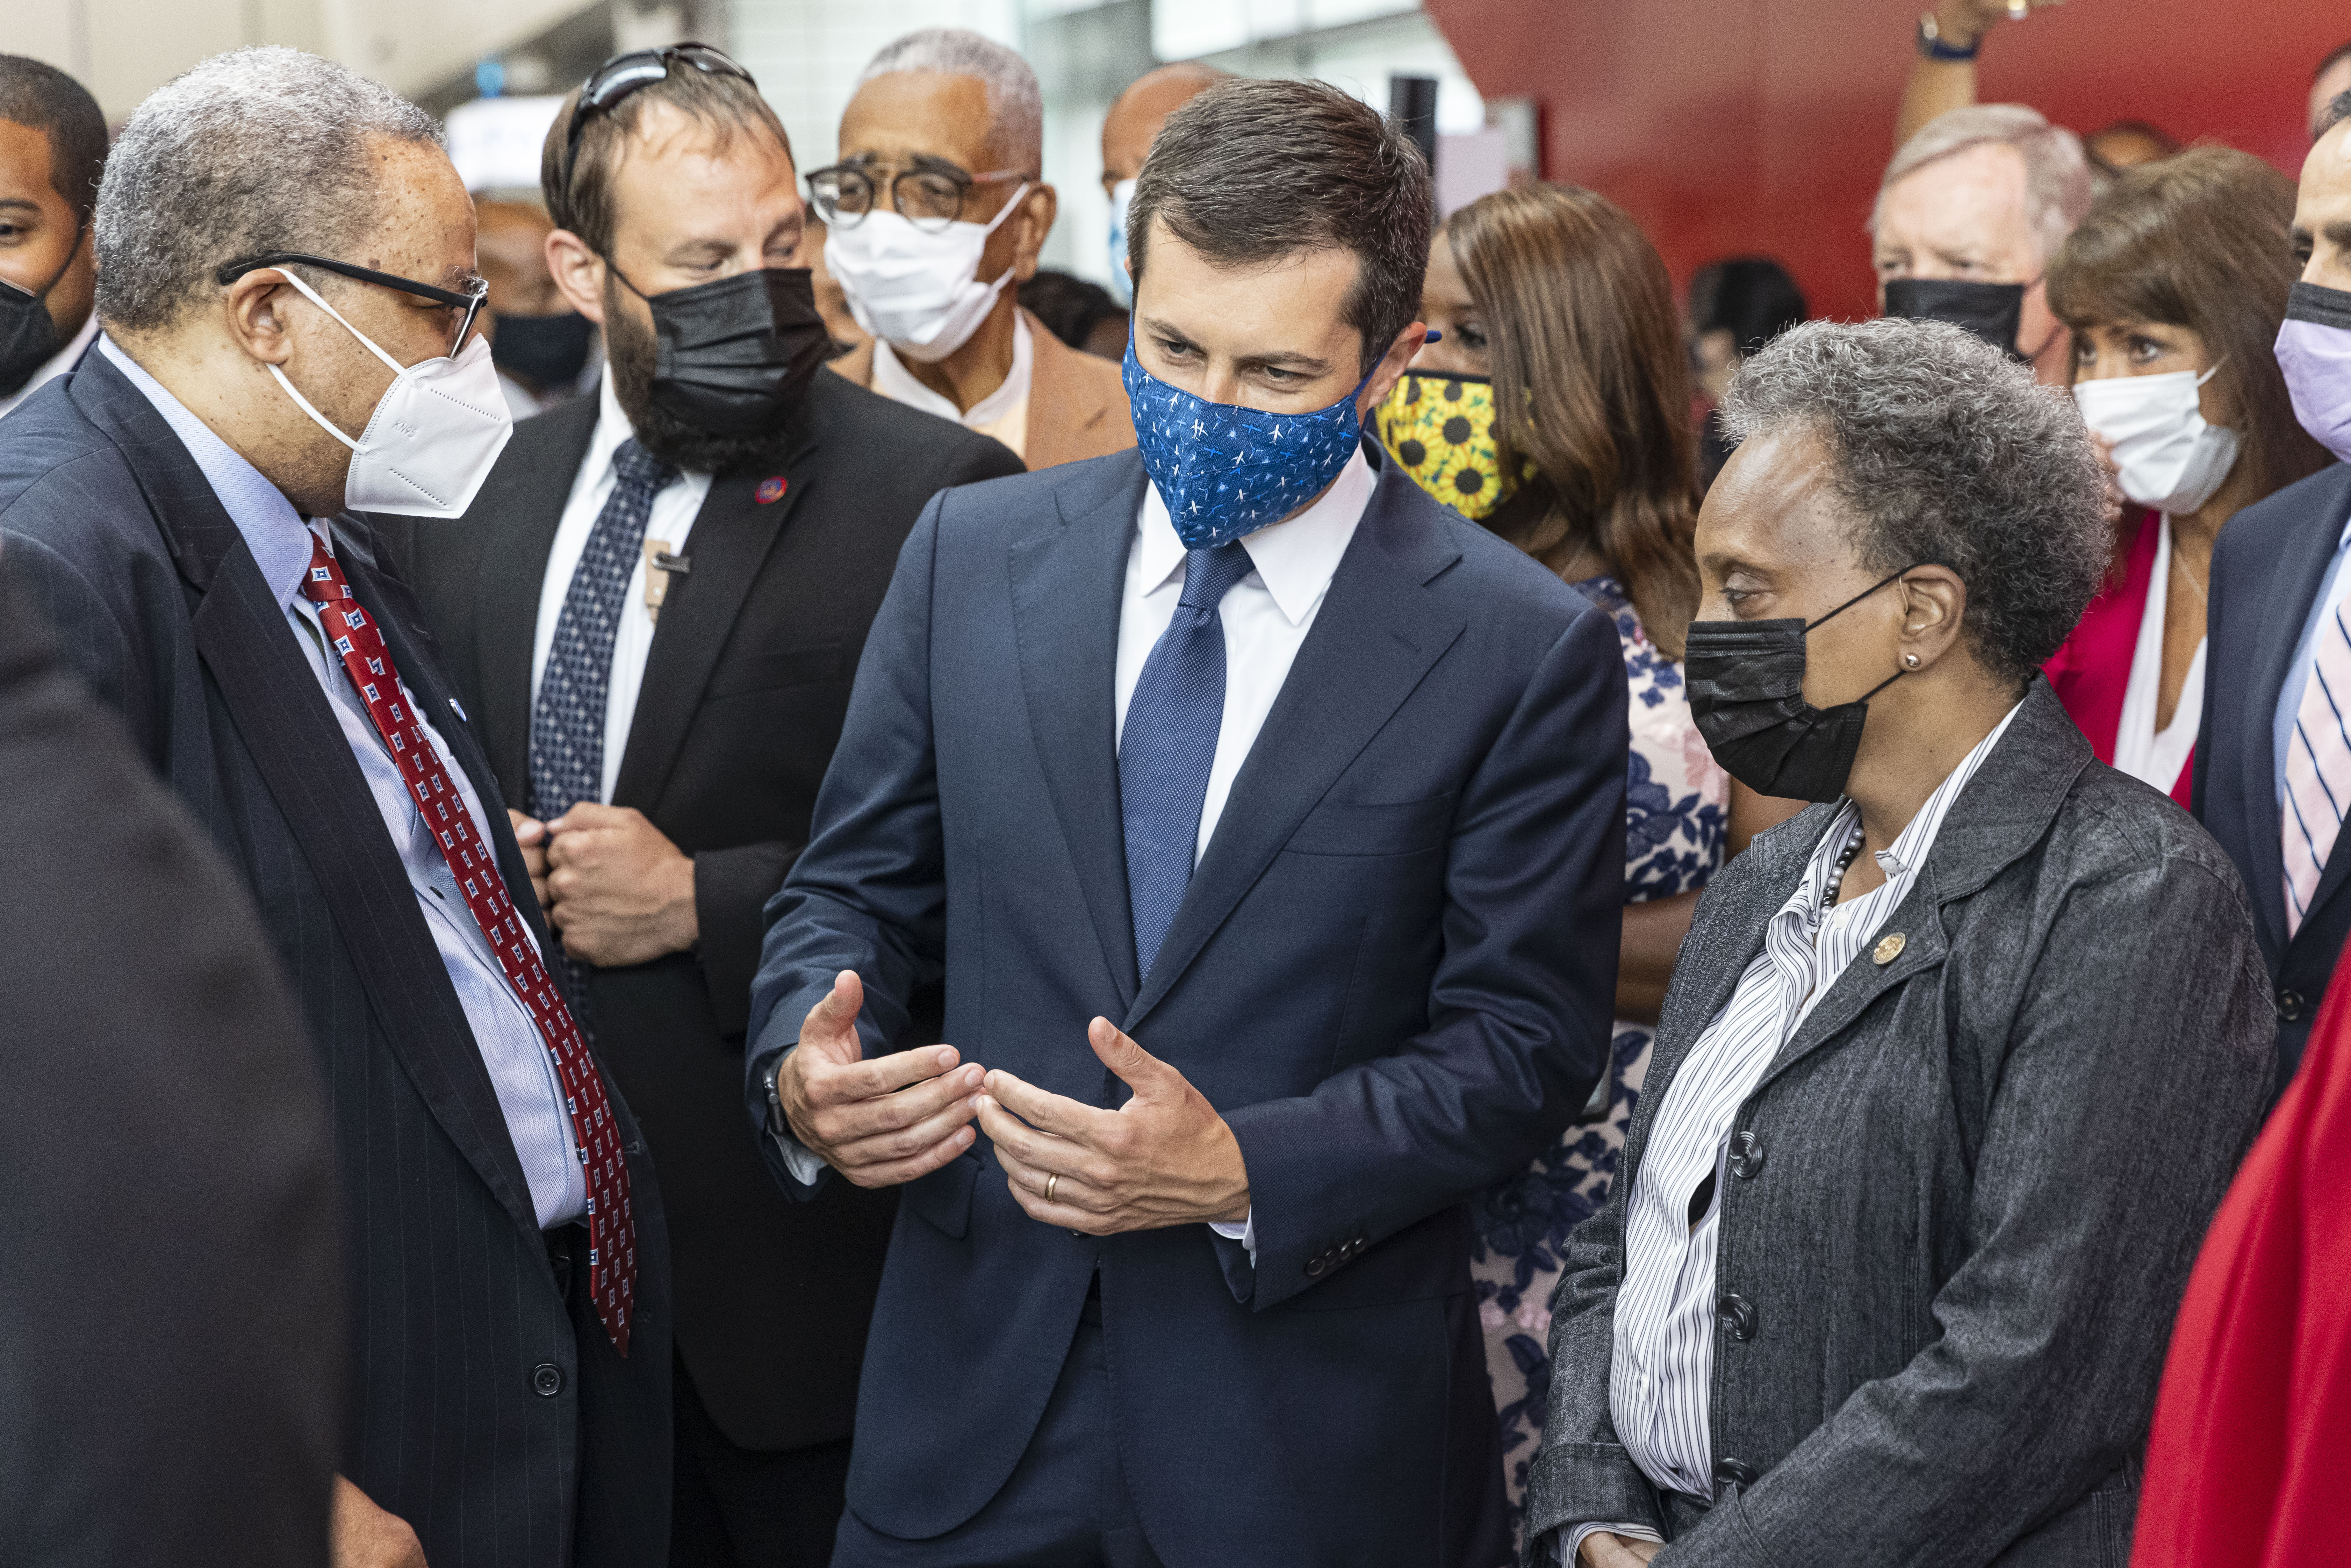 U.S. Transportation Secretary Pete Buttigieg speaks with Mayor Lori Lightfoot and CTA President Dorval R. Carter, Jr. during a tour of the CTA Red Line 95th St/ Dan Ryan Station on Friday.